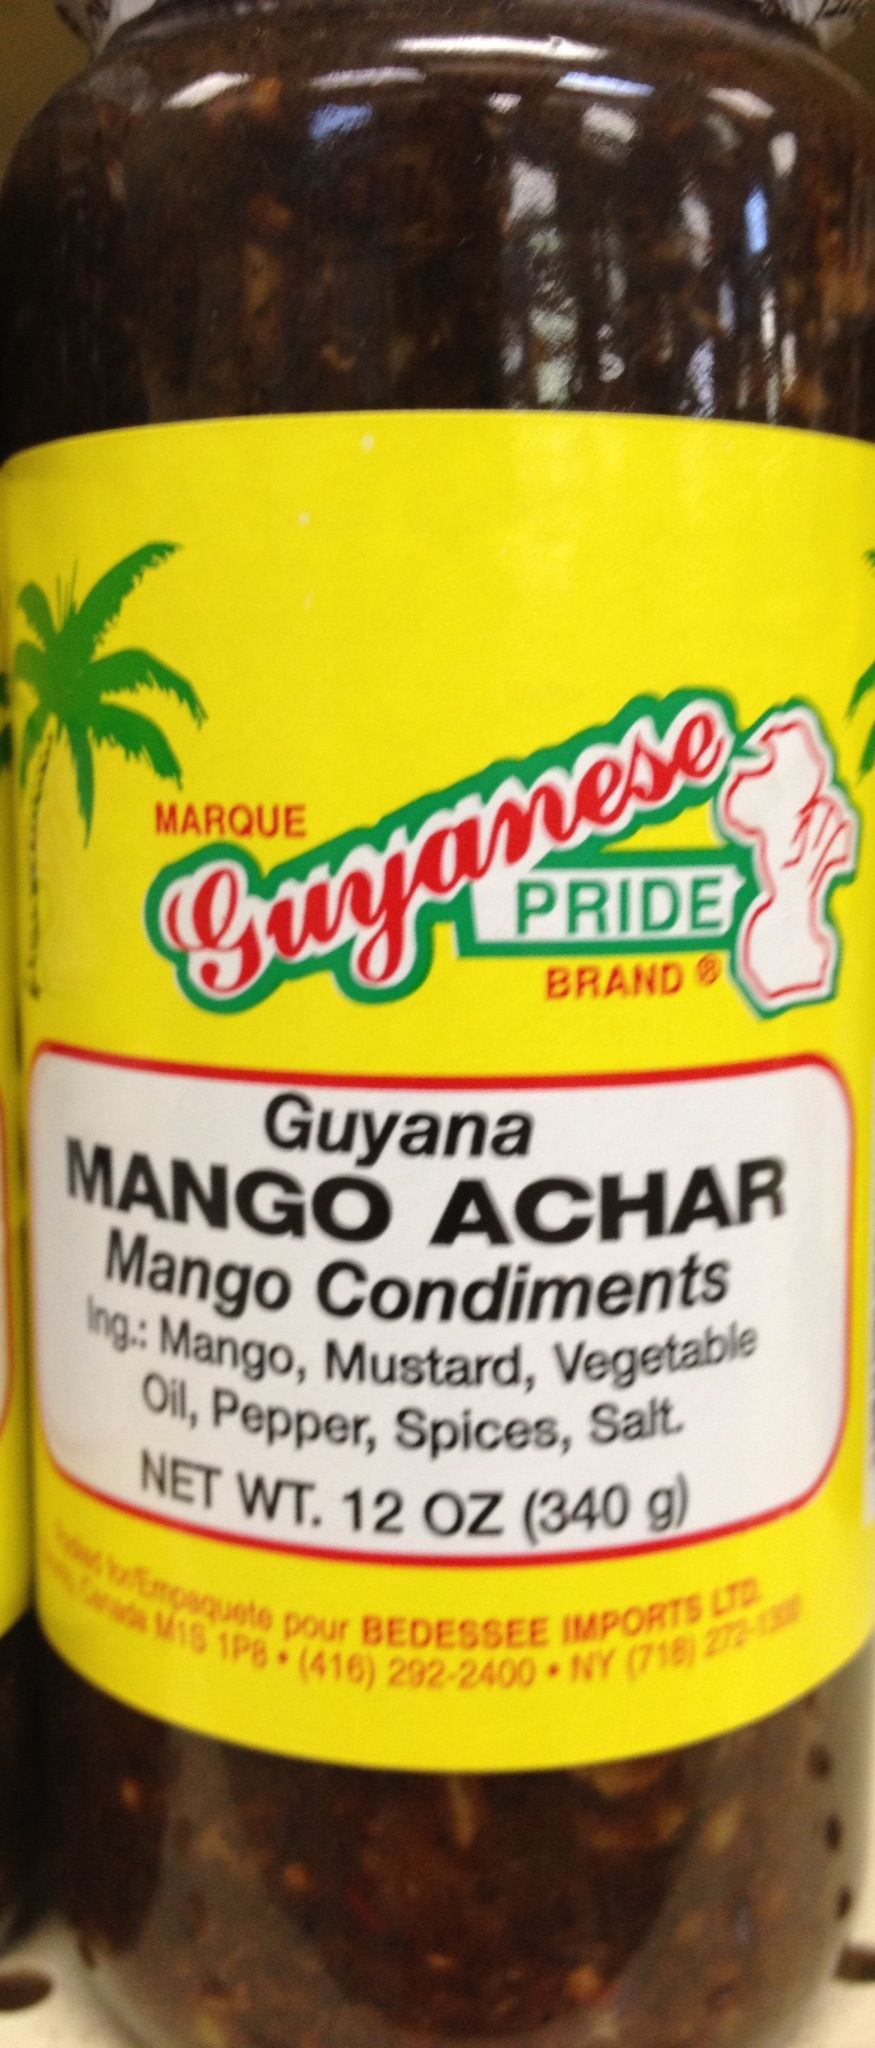 Mango Achar imported from Guyana. One of my favorite cooking ingredients.